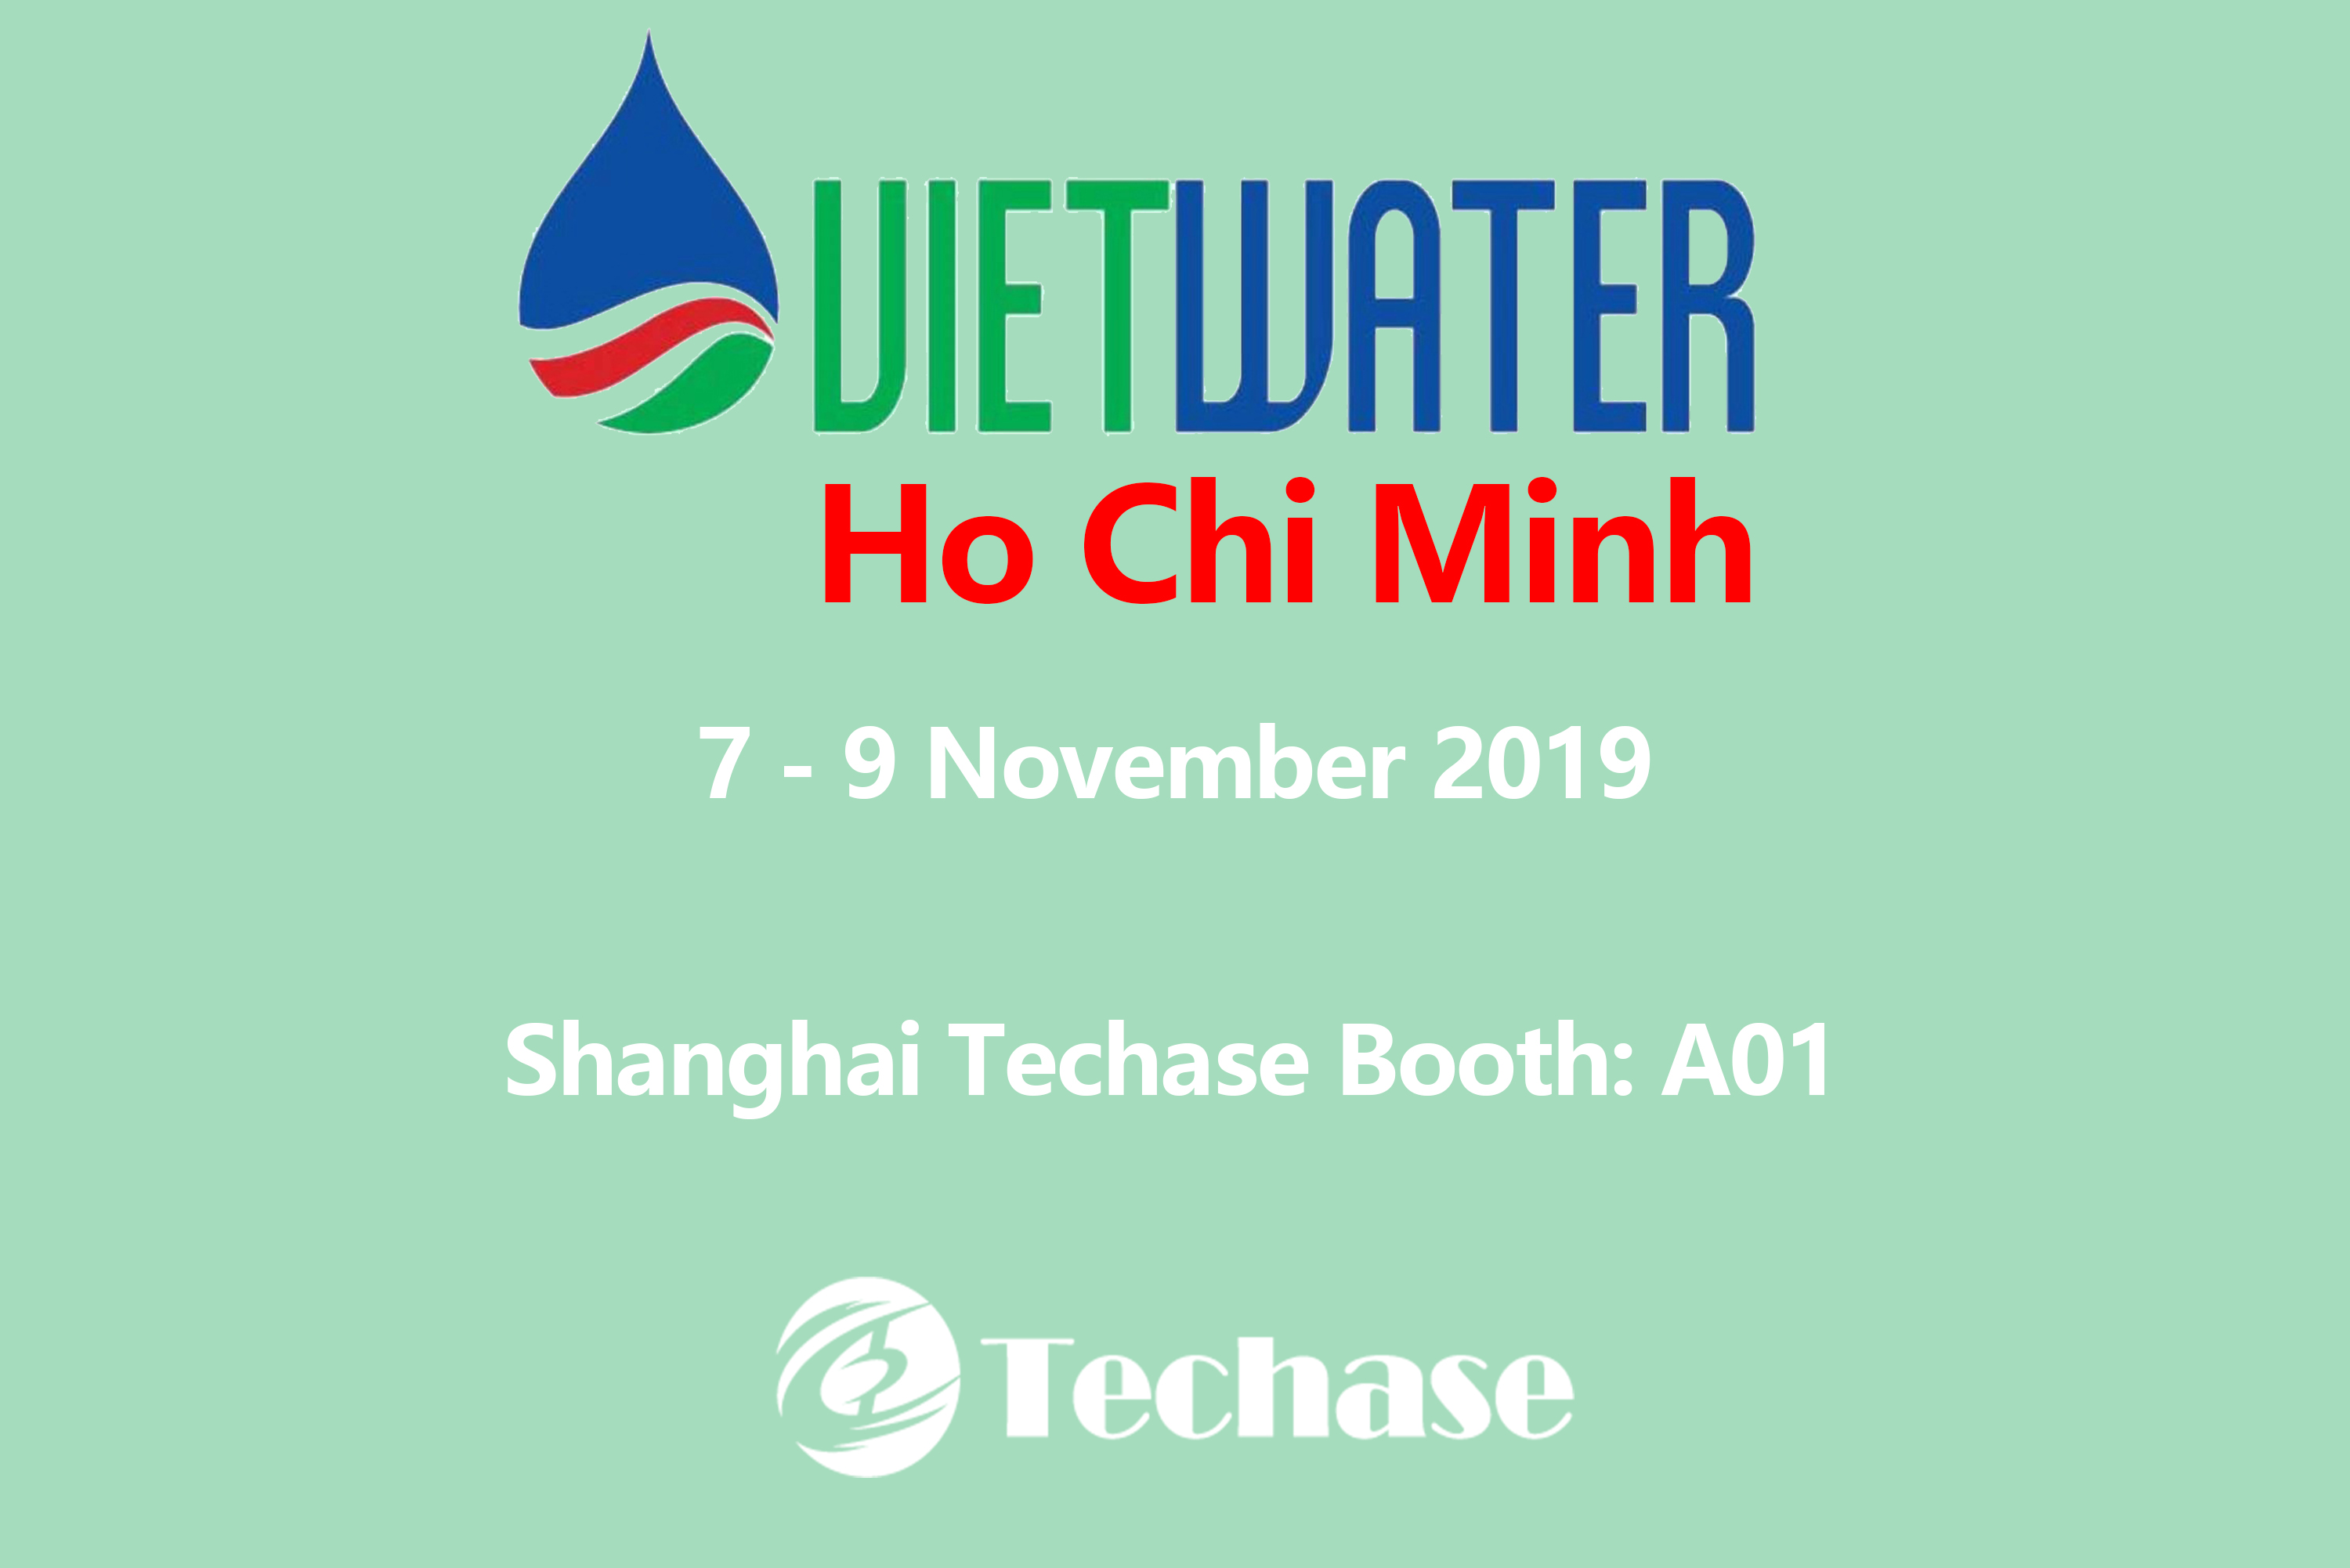 <b>Techase Exhibition Forecast | Vietwater Ho Chi Minh 2019</b>